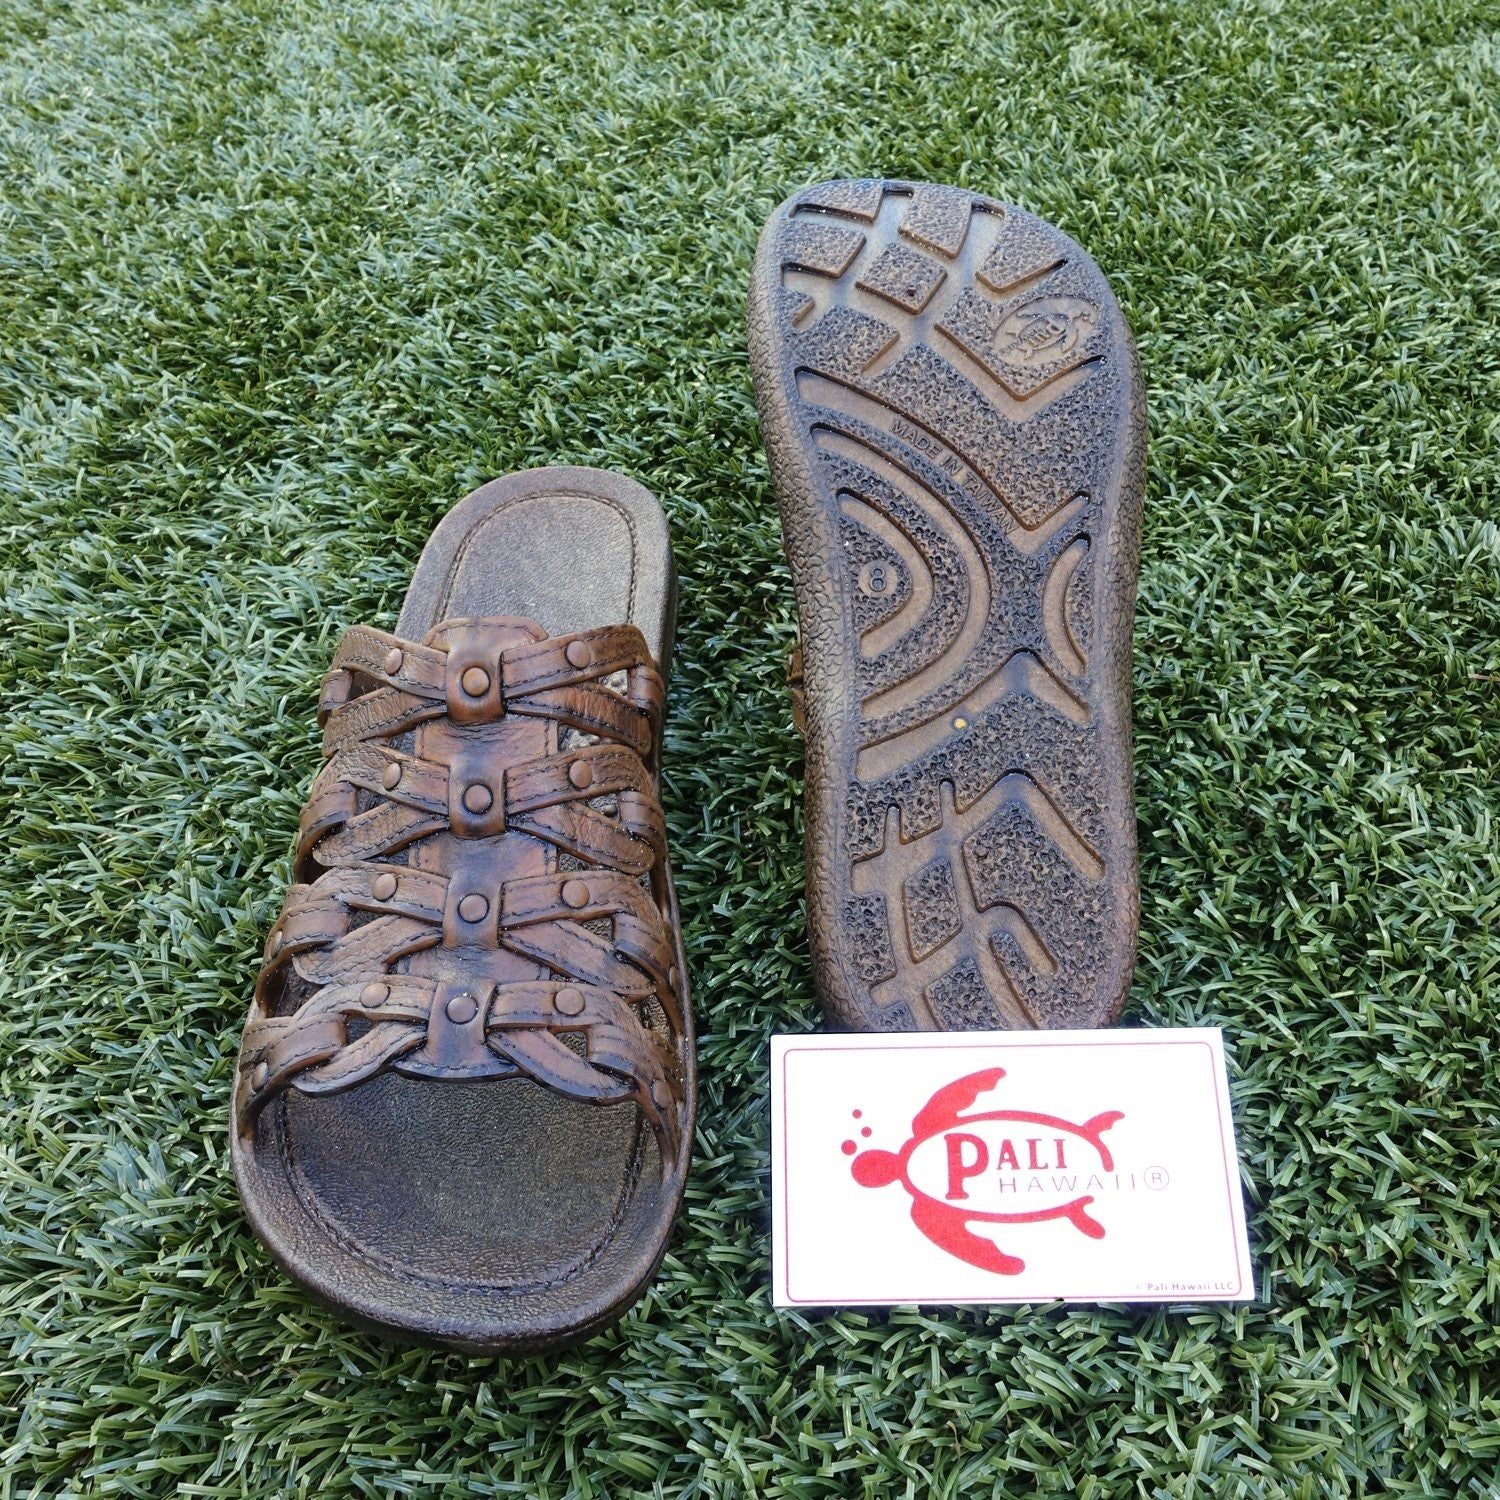 40dbfb43aff9 Shop pali hawaii tia brown sandals with certificate of authenticity free  shipping on orders over overstock